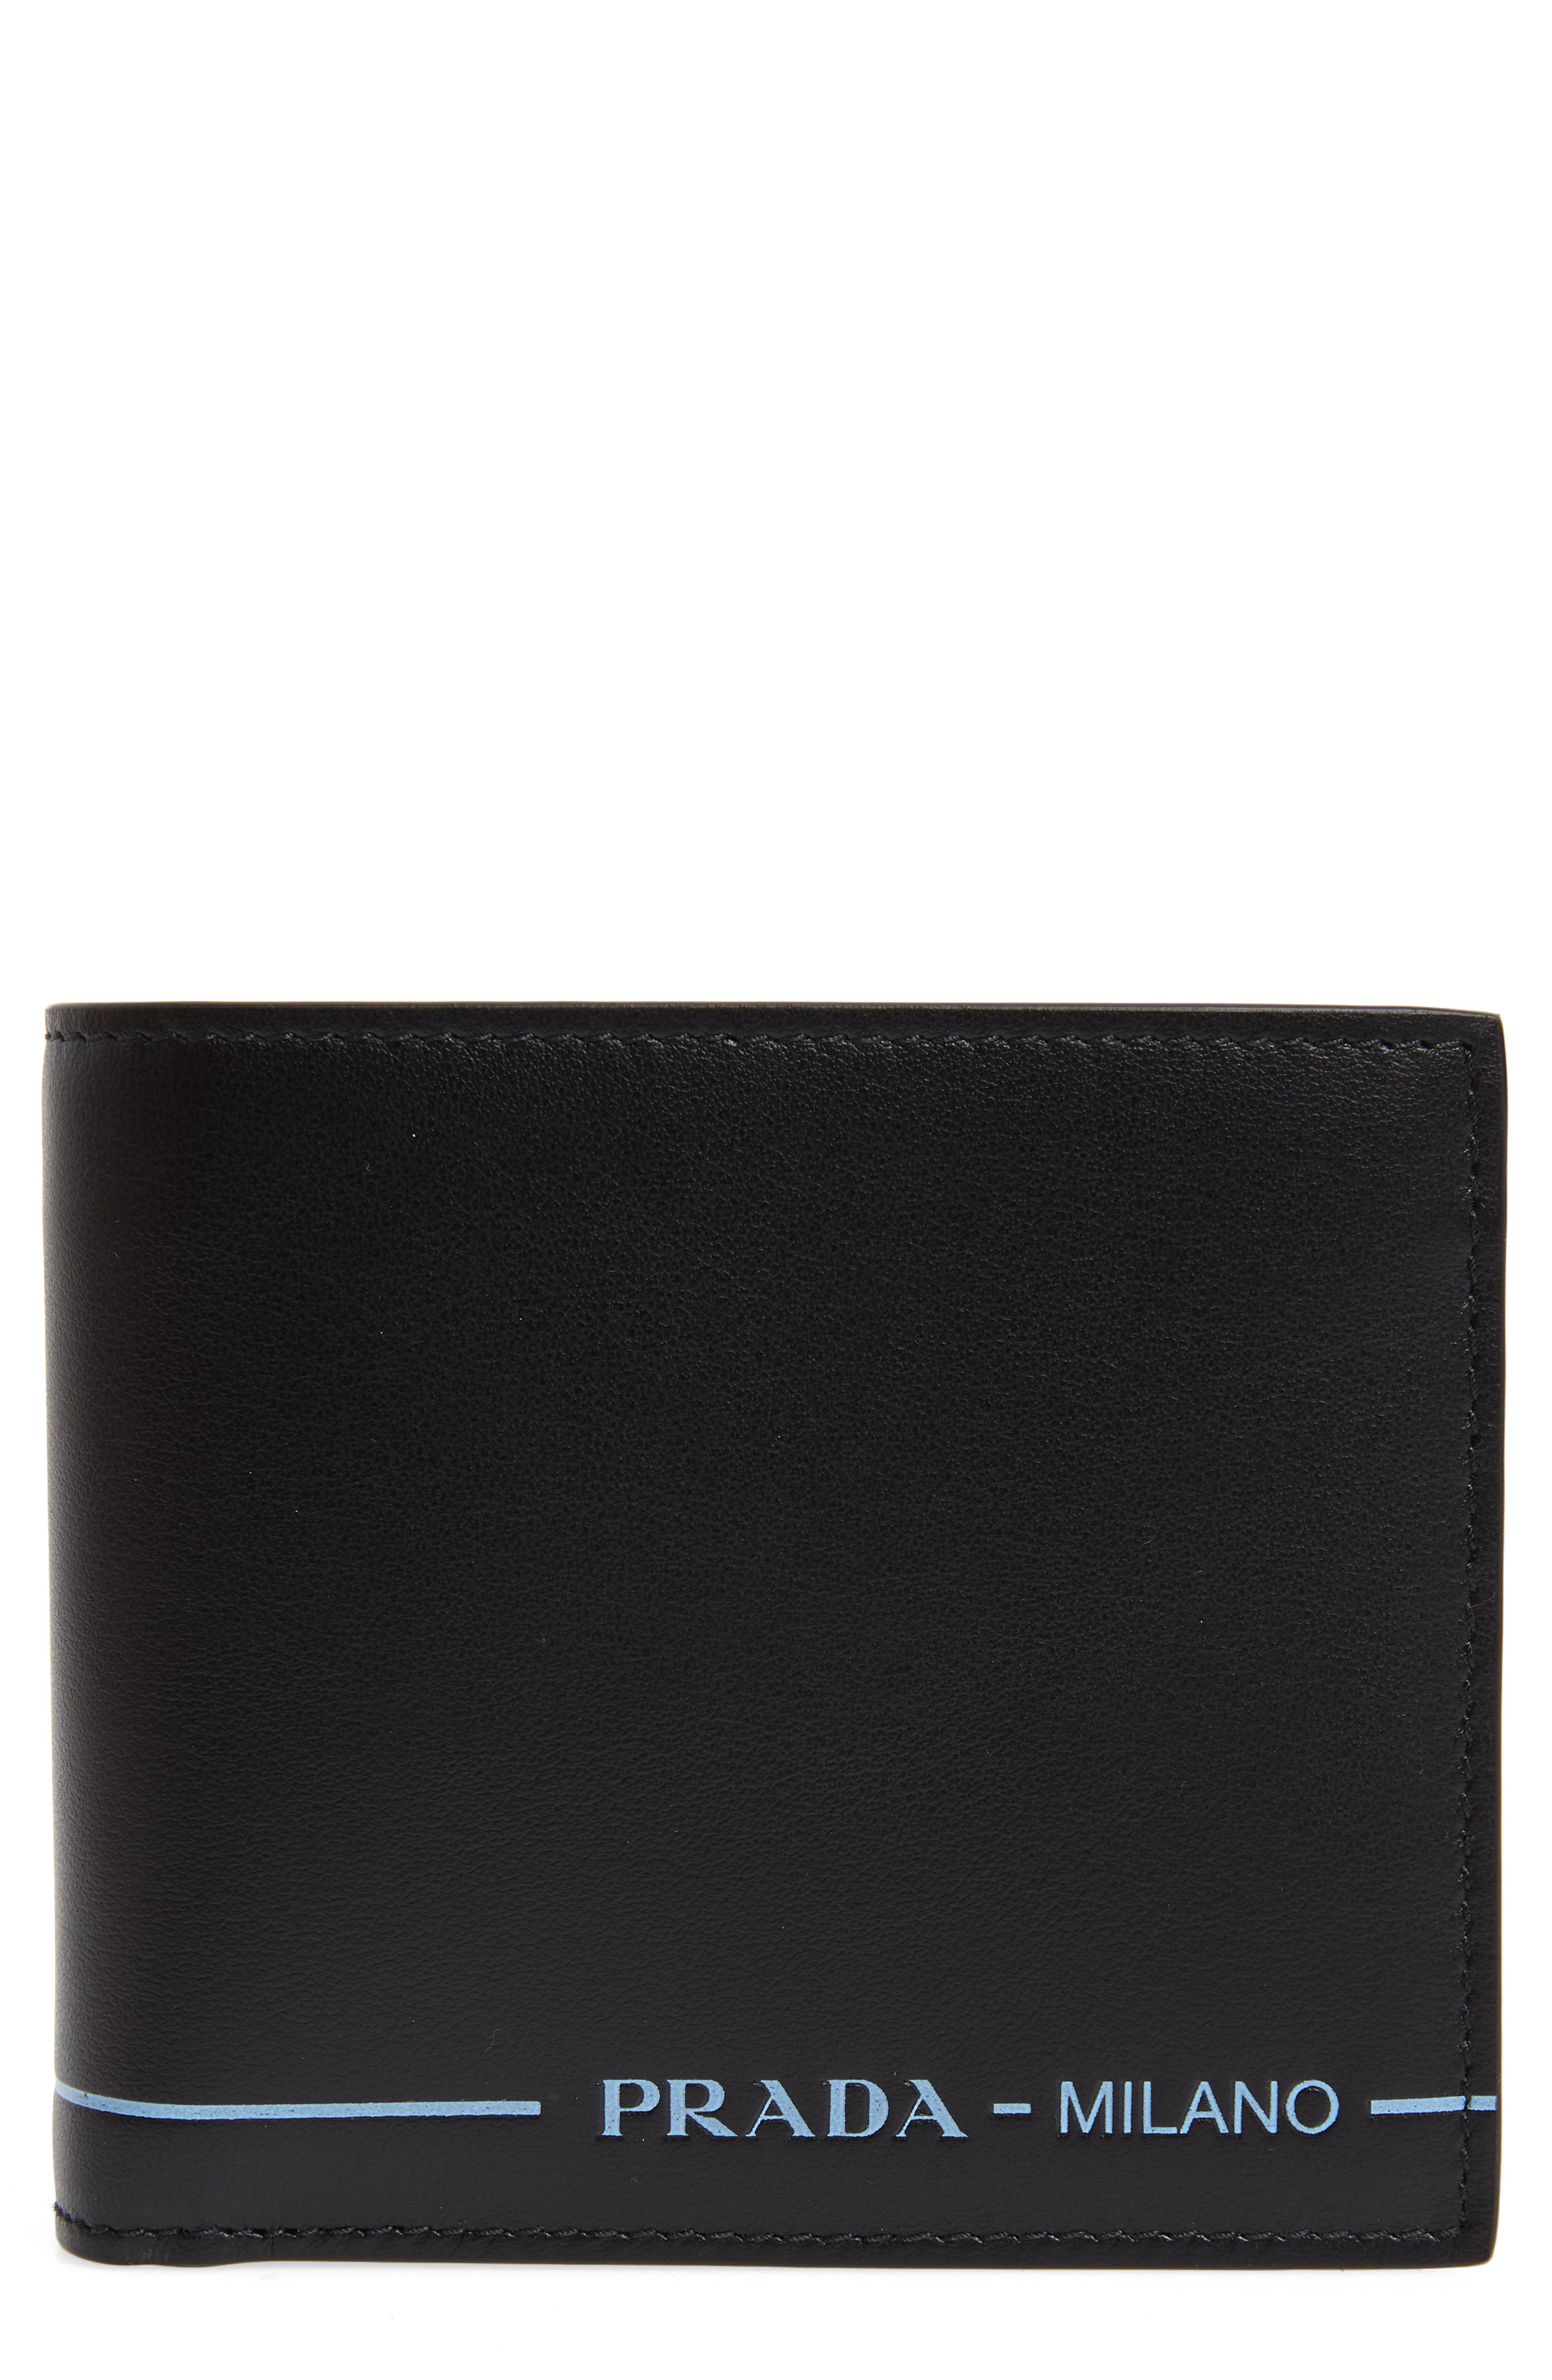 City Sport Leather Wallet,                             Main thumbnail 1, color,                             001